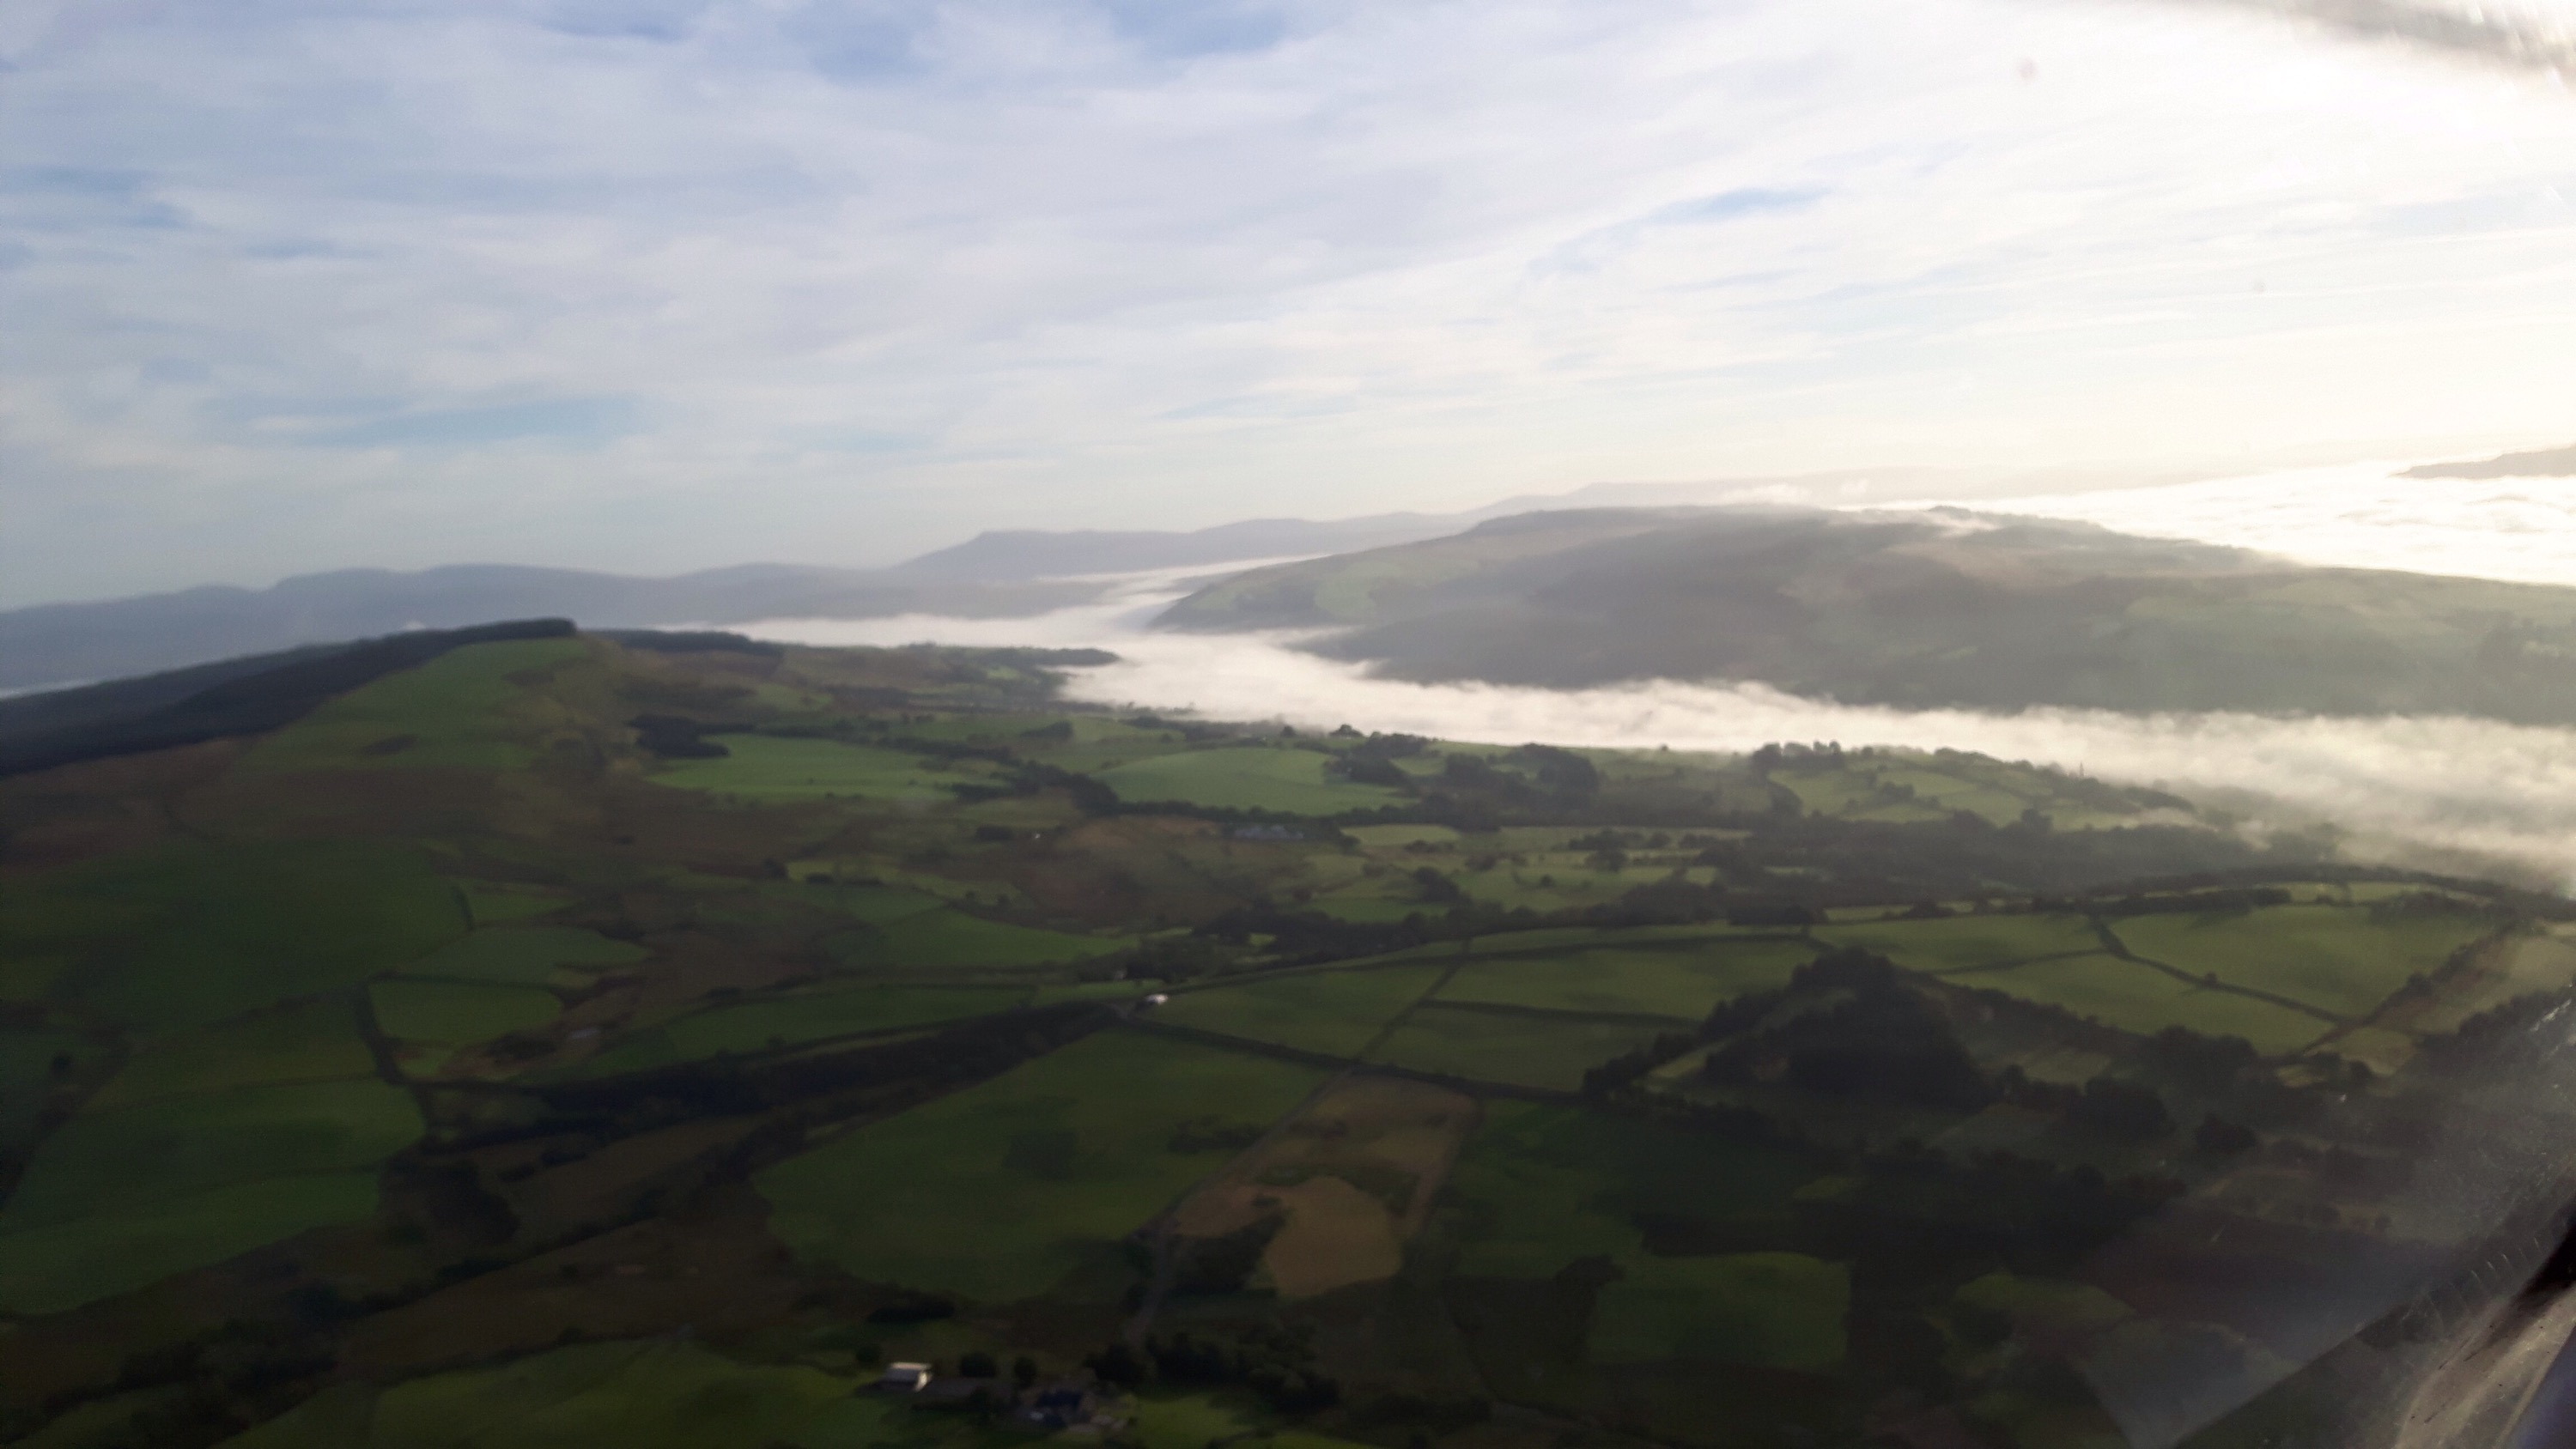 Mist in Swansea and Neath valleys